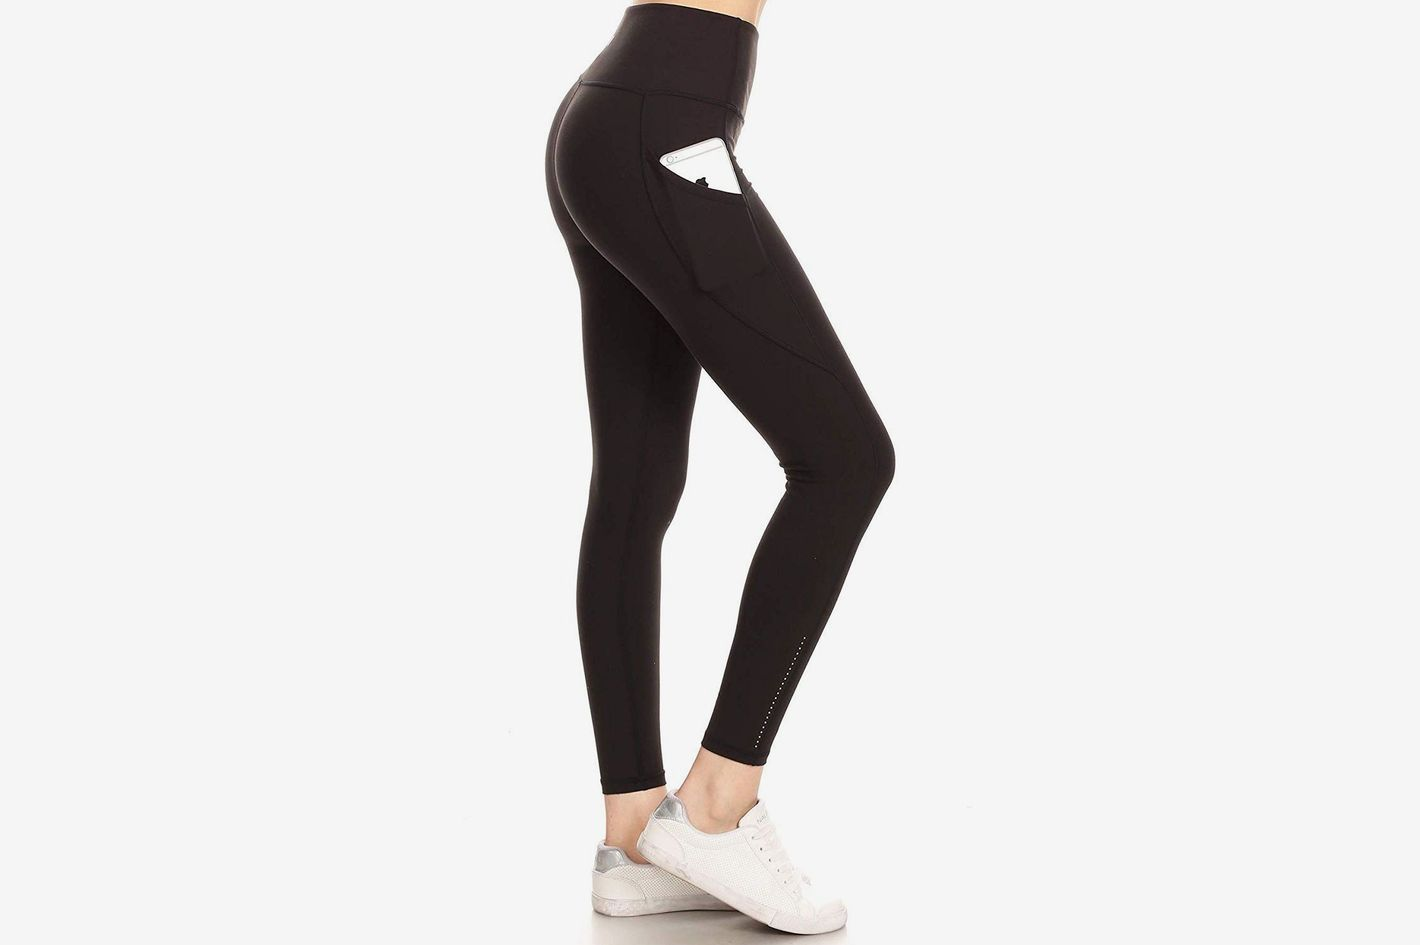 b22f30a7fc Leggings Depot High Waisted Leggings